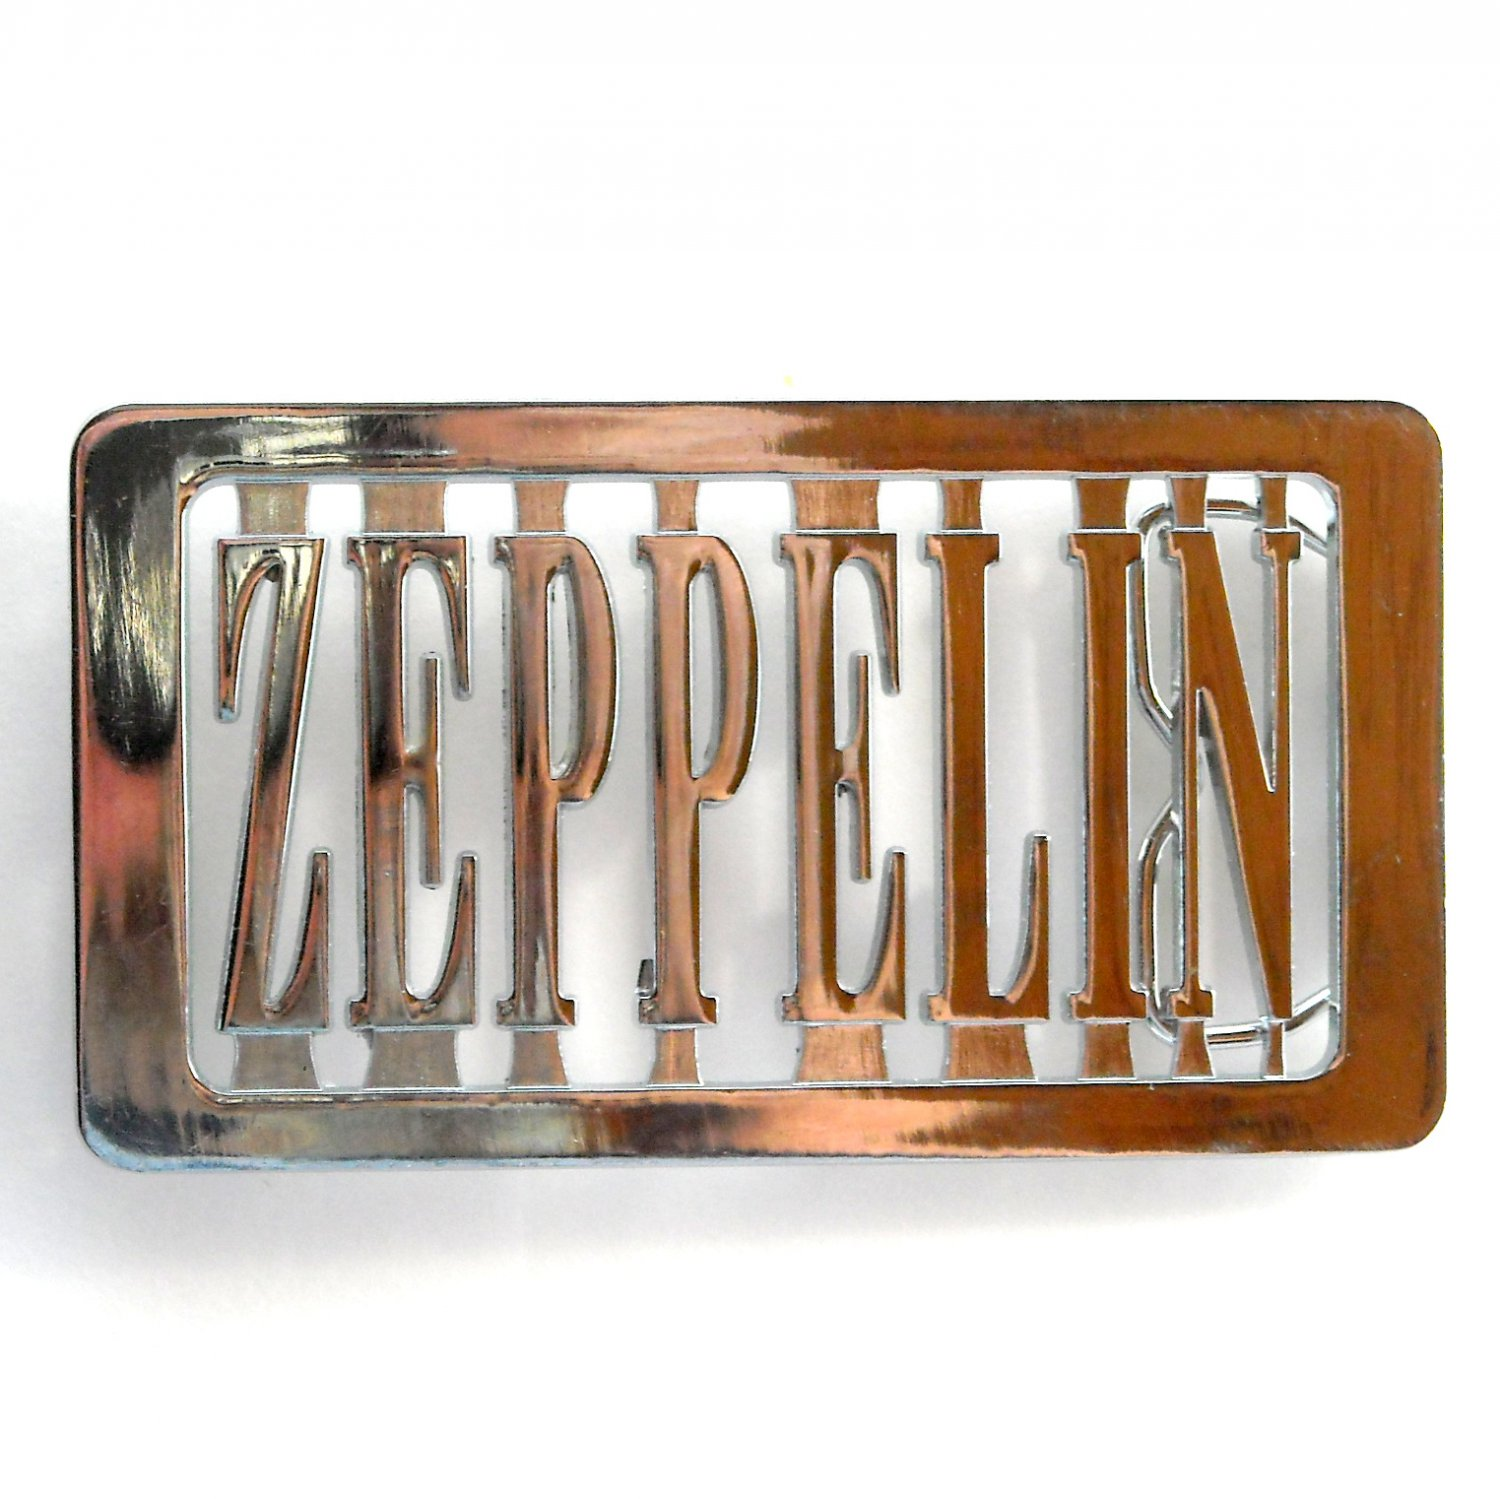 Zeppelin Cut Out Silver Color Metal Alloy Belt Buckle